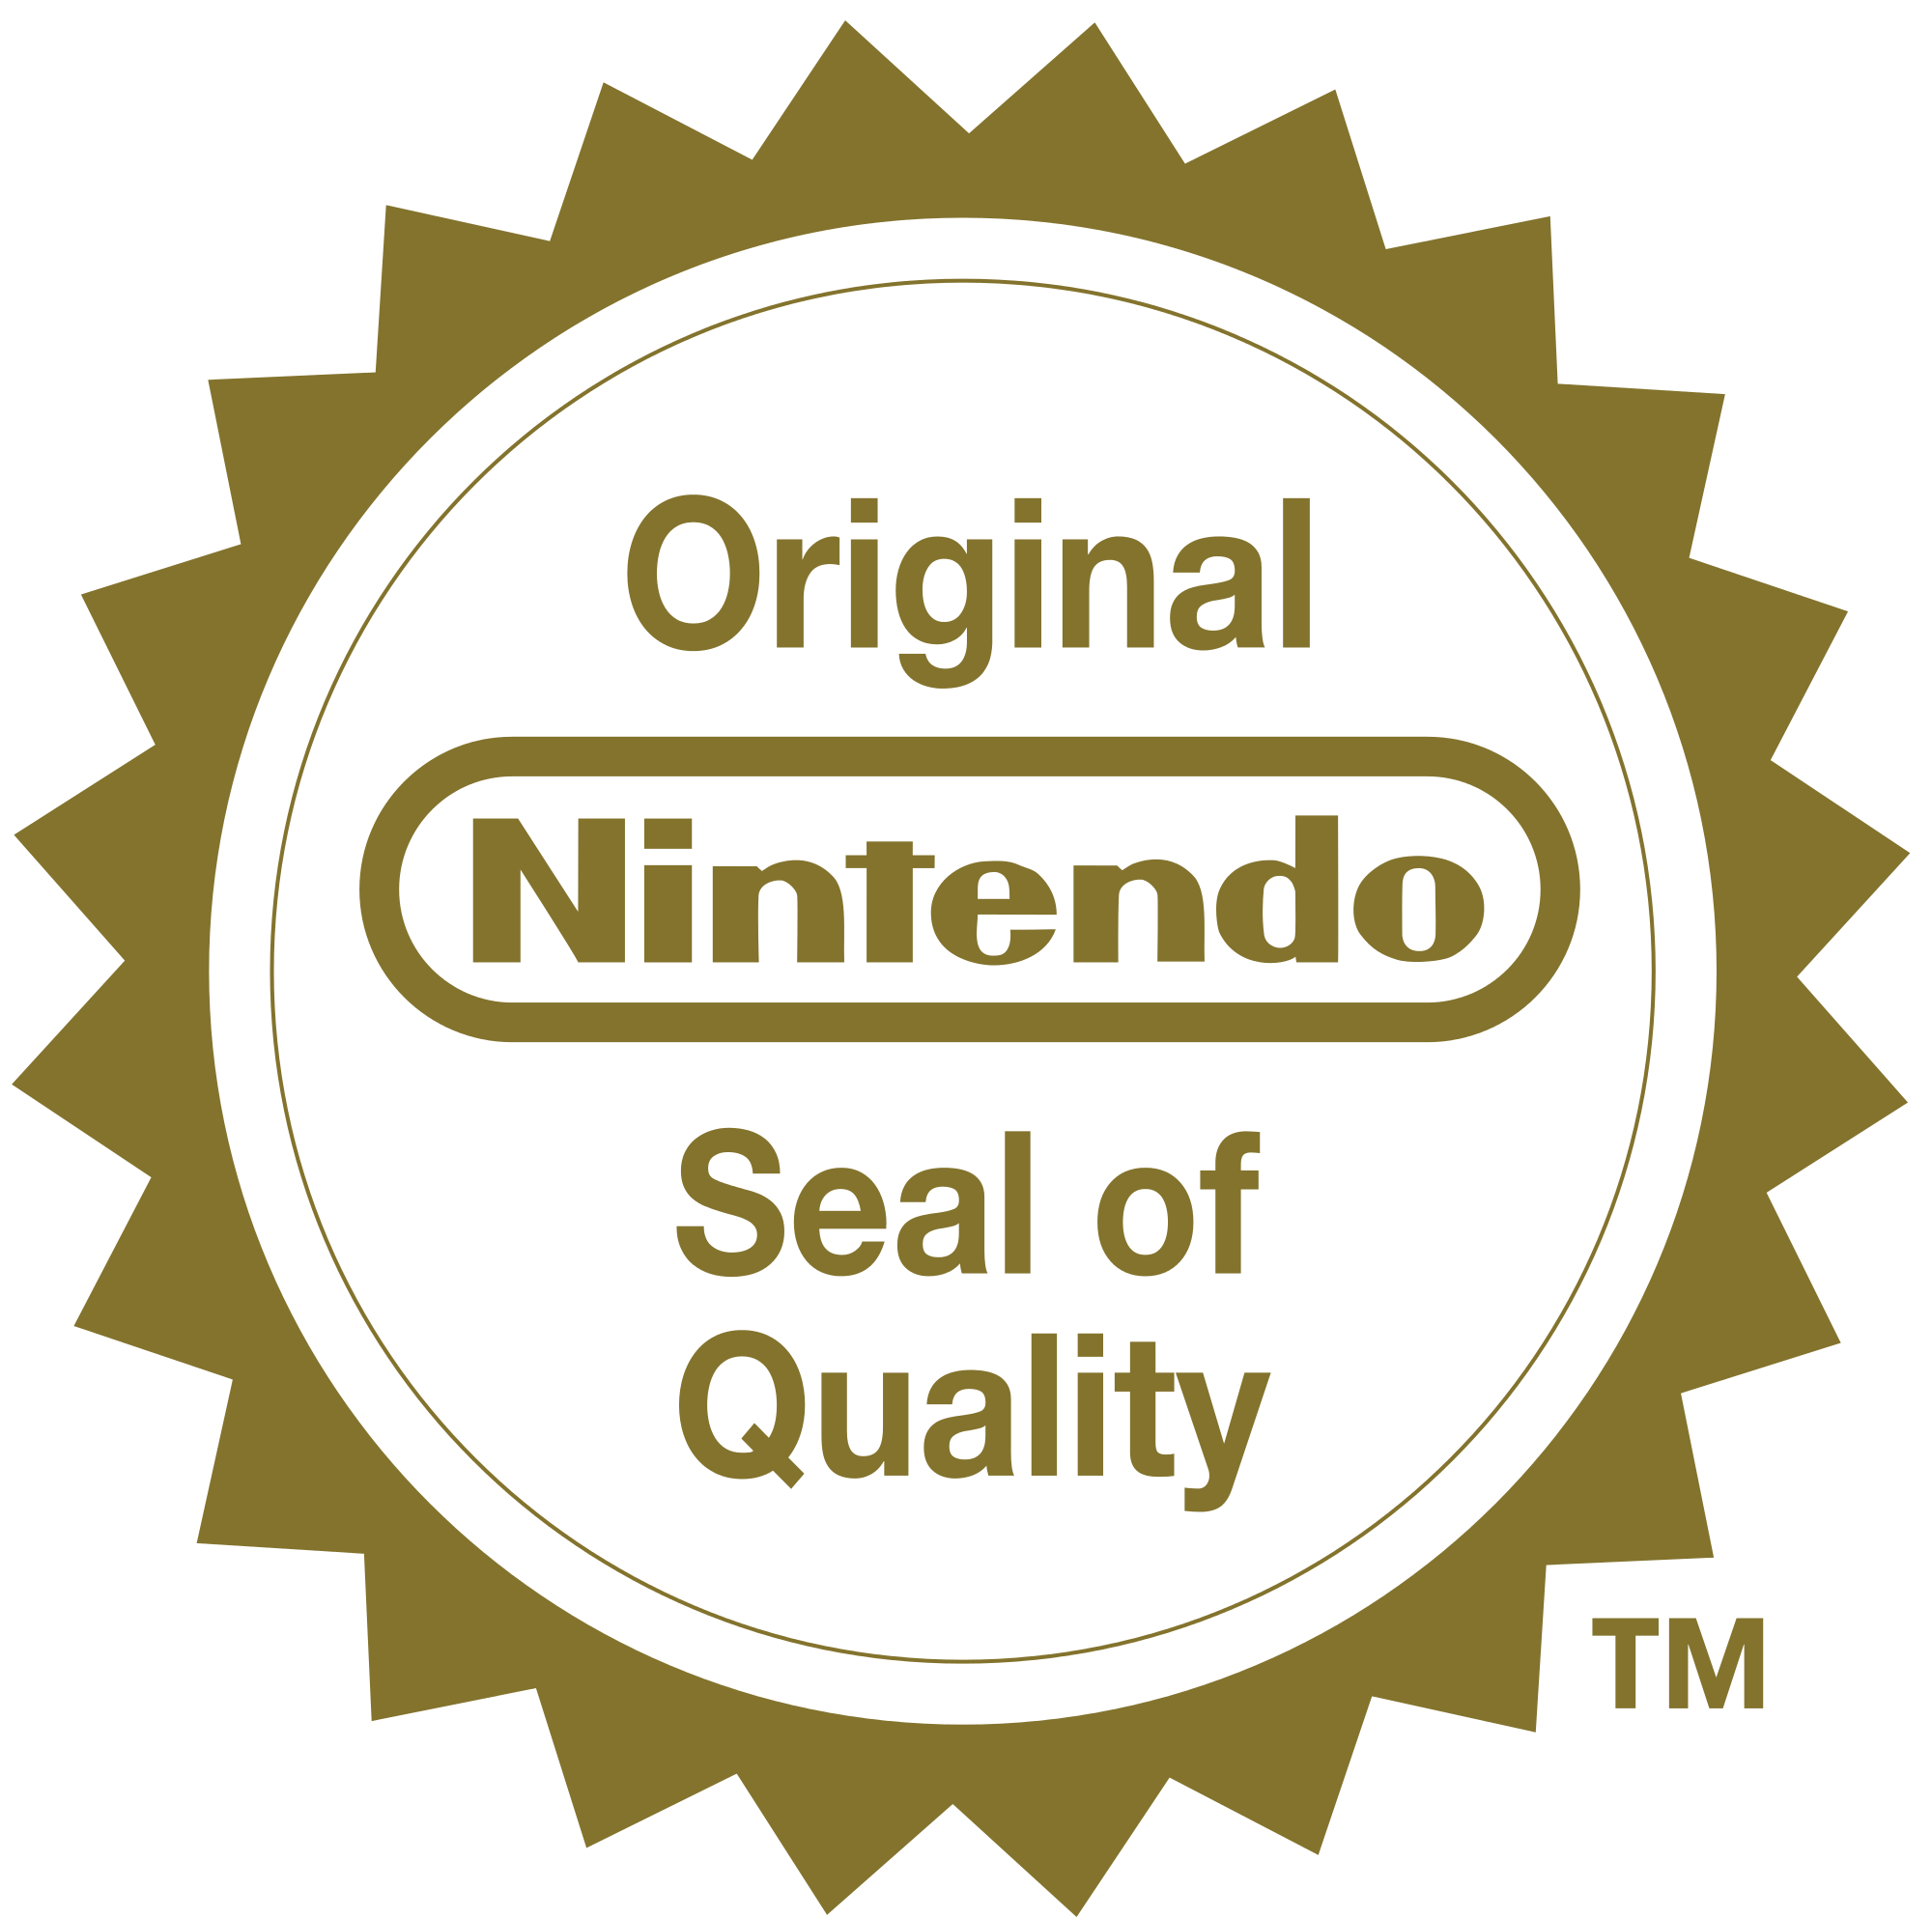 Original_Nintendo_Seal_of_Quality_emblem